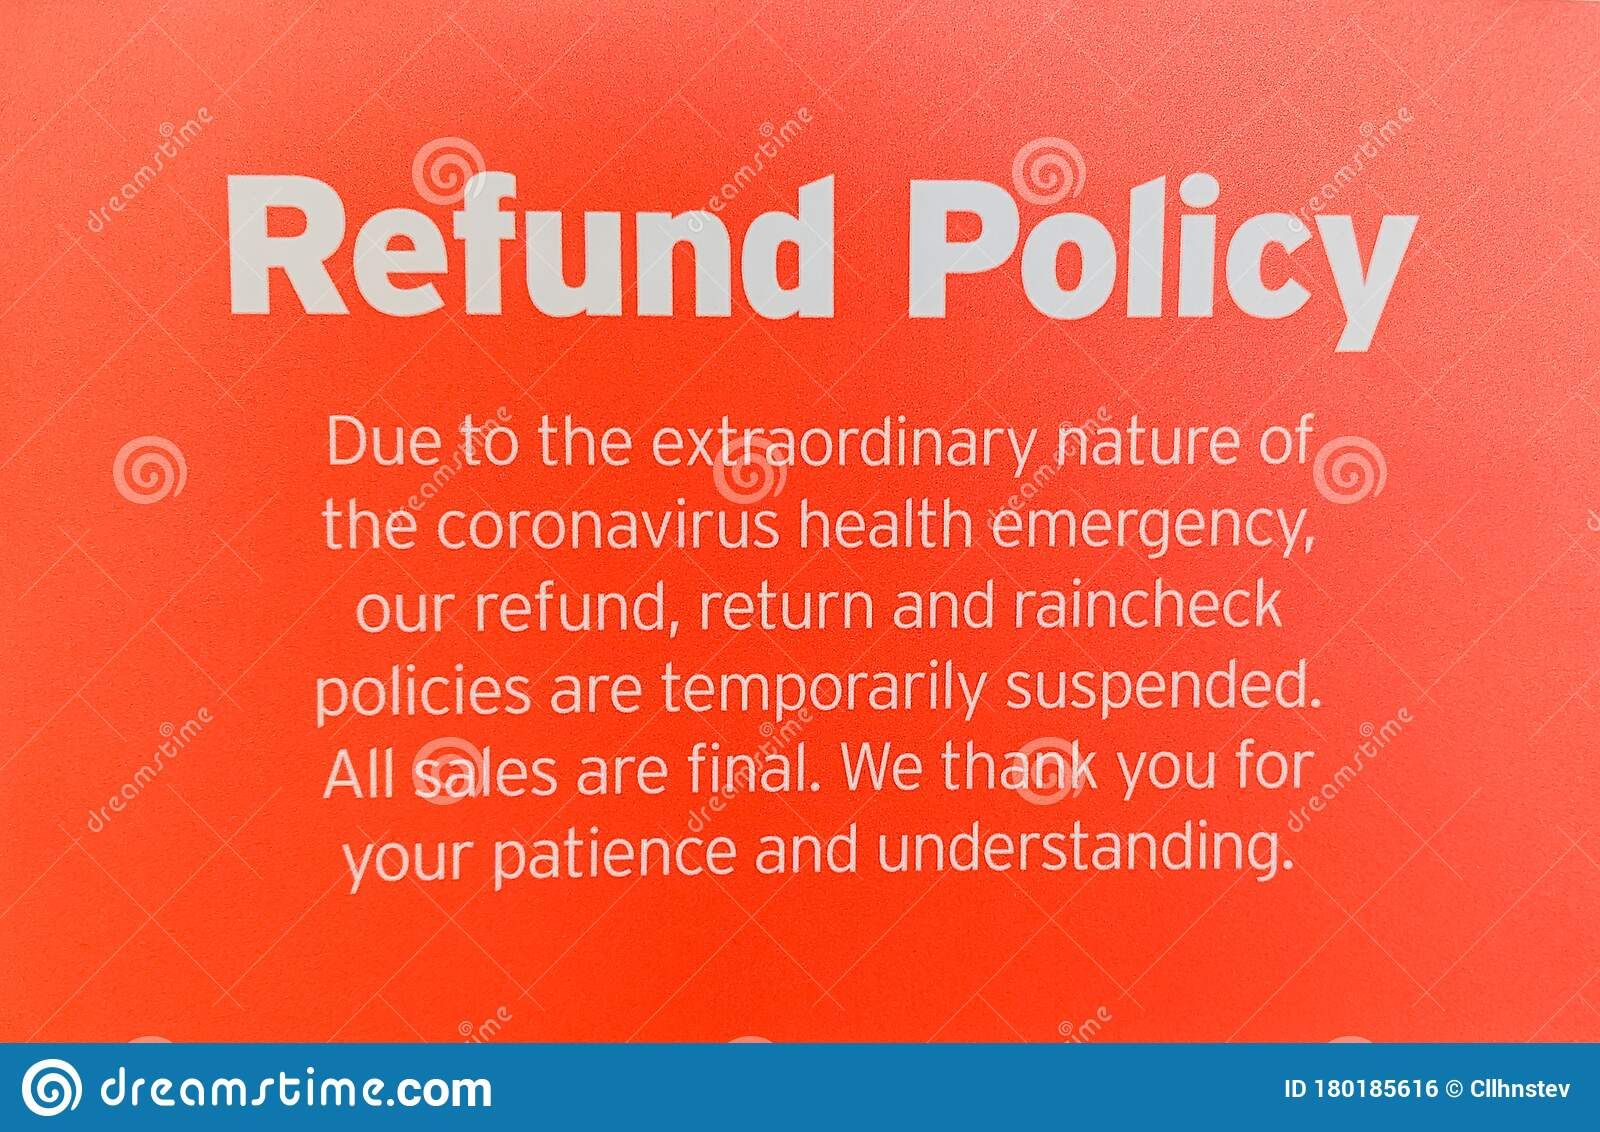 Refund Policy Due To Health Emergency Banner Stock Photo Image Of Final Covid19 180185616